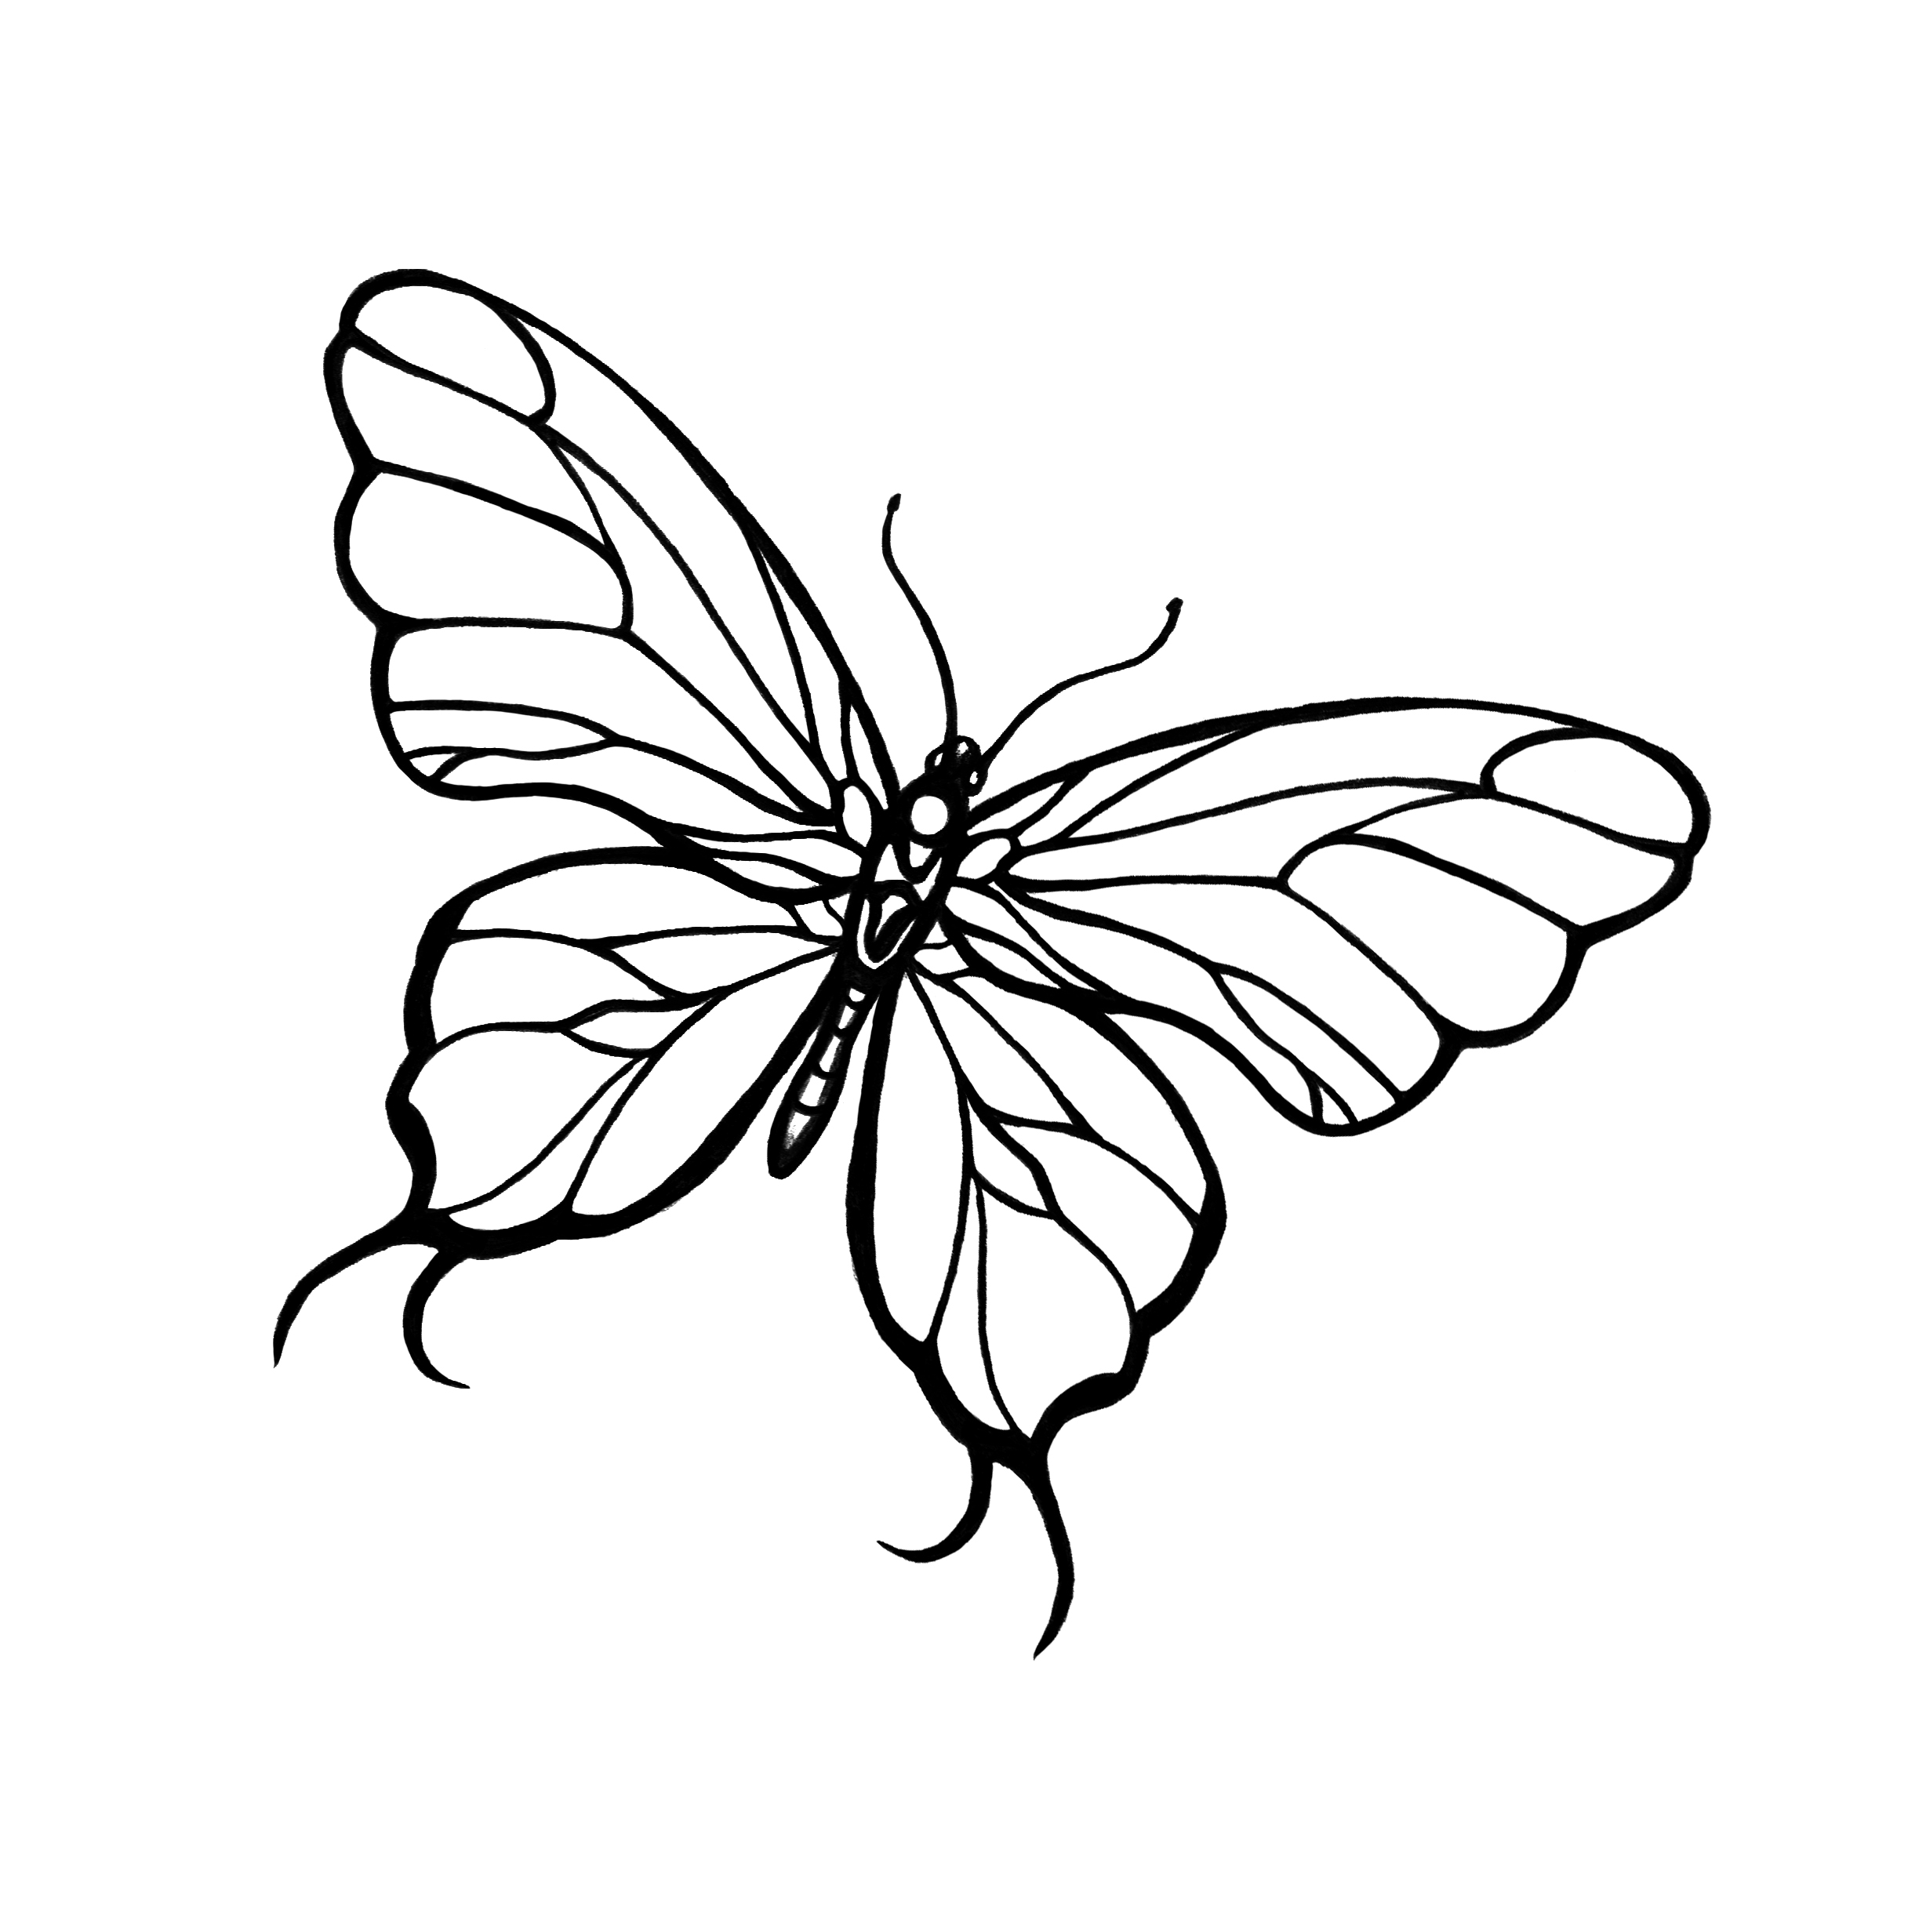 Simple Black Line Butterfly Tattoo Design Tattooimages Biz